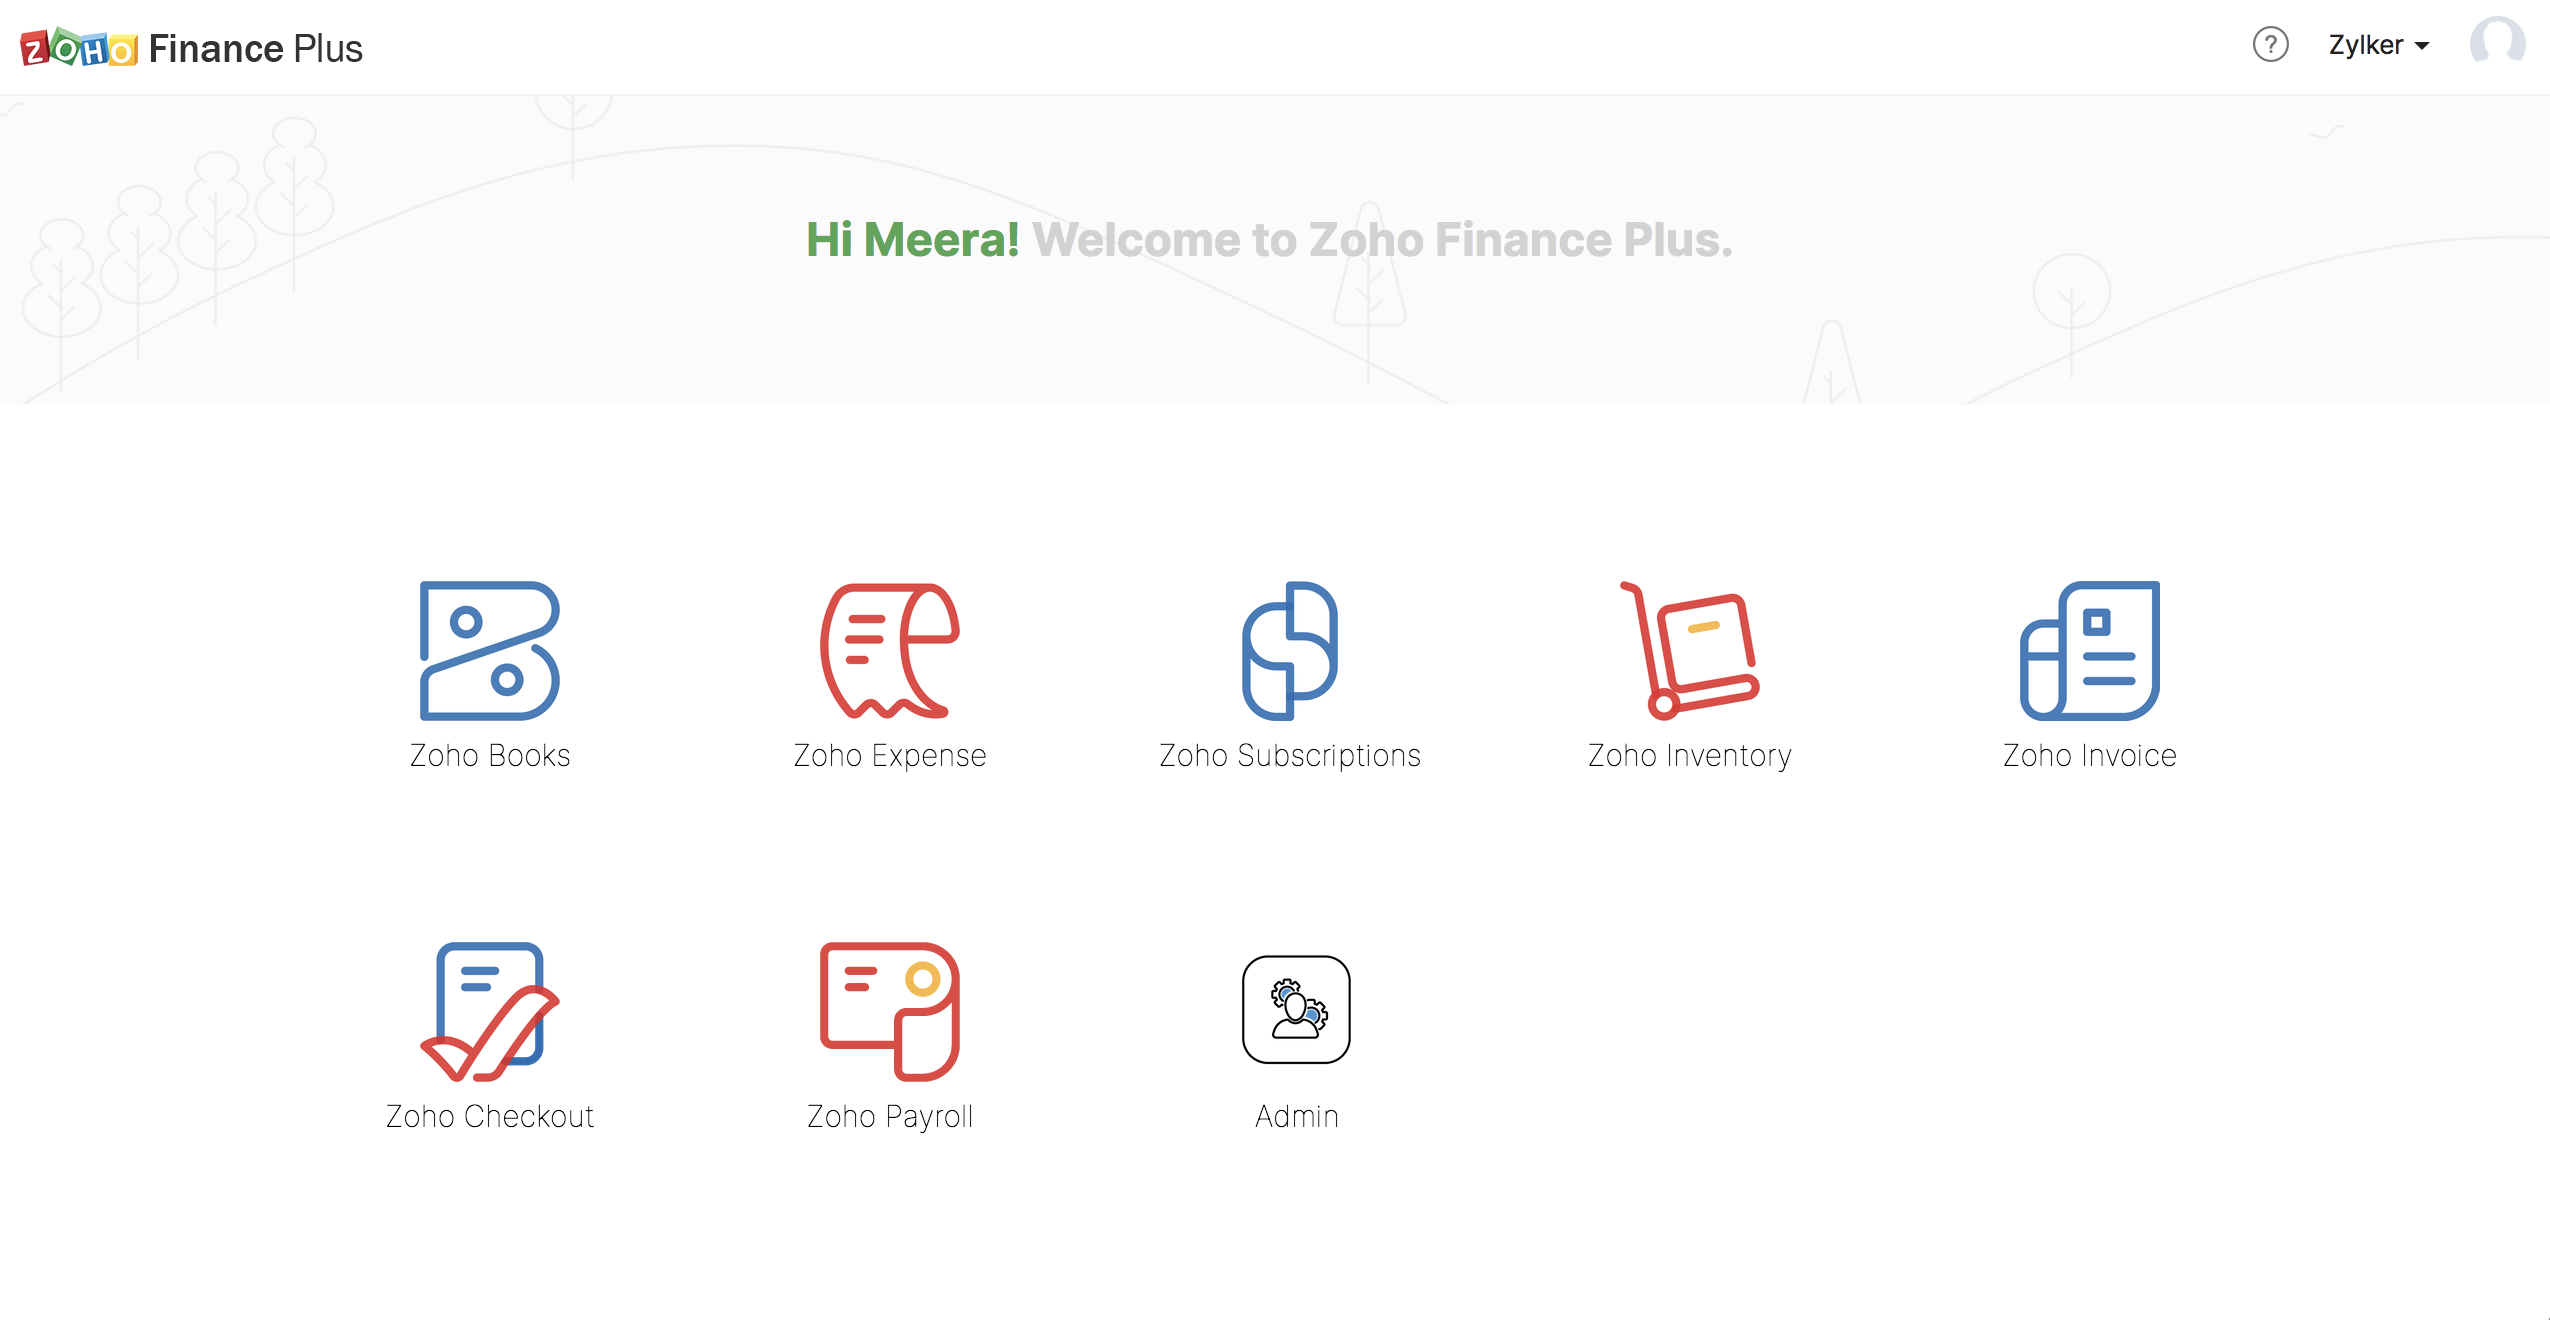 Zoho Finance Plus home page